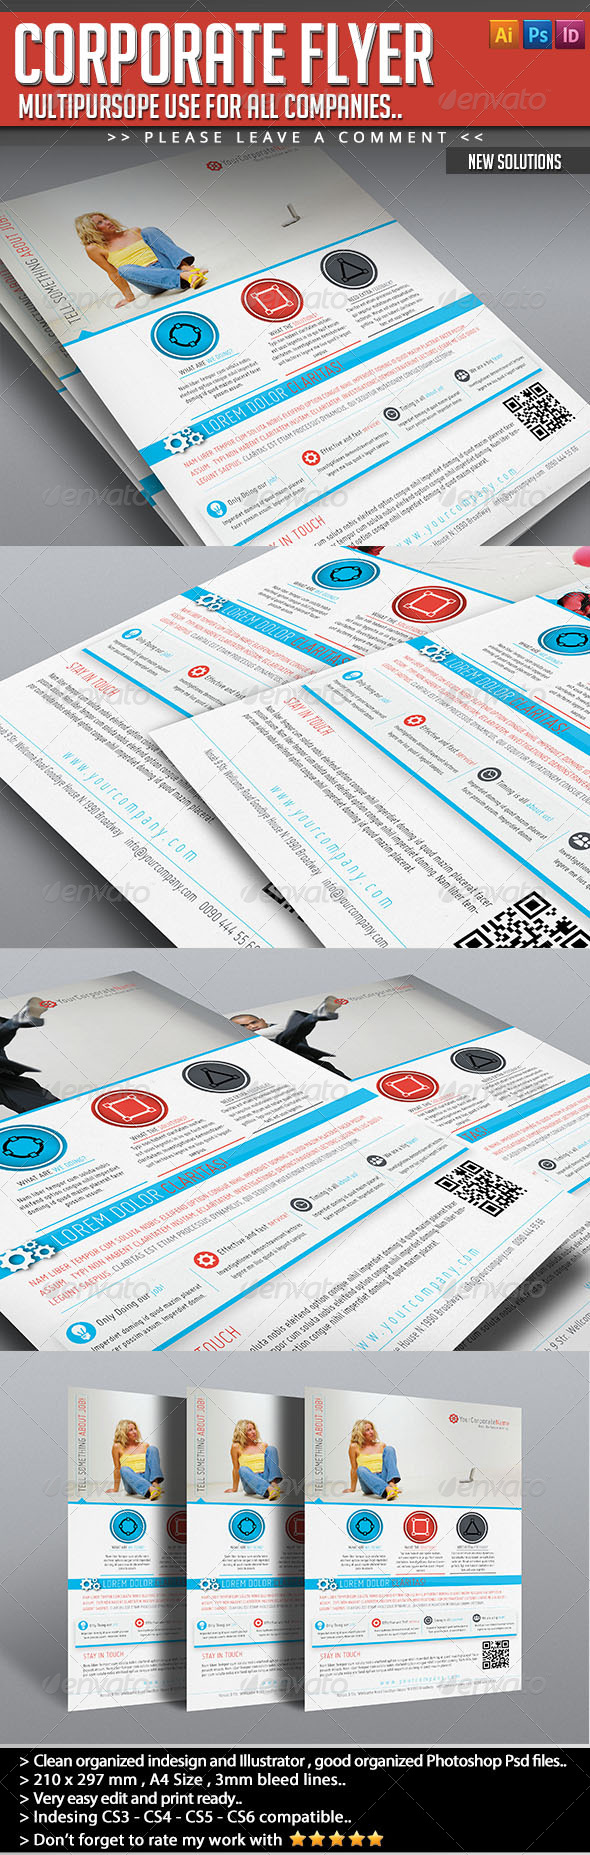 GraphicRiver Corporate Flyer New Solutions 4852137